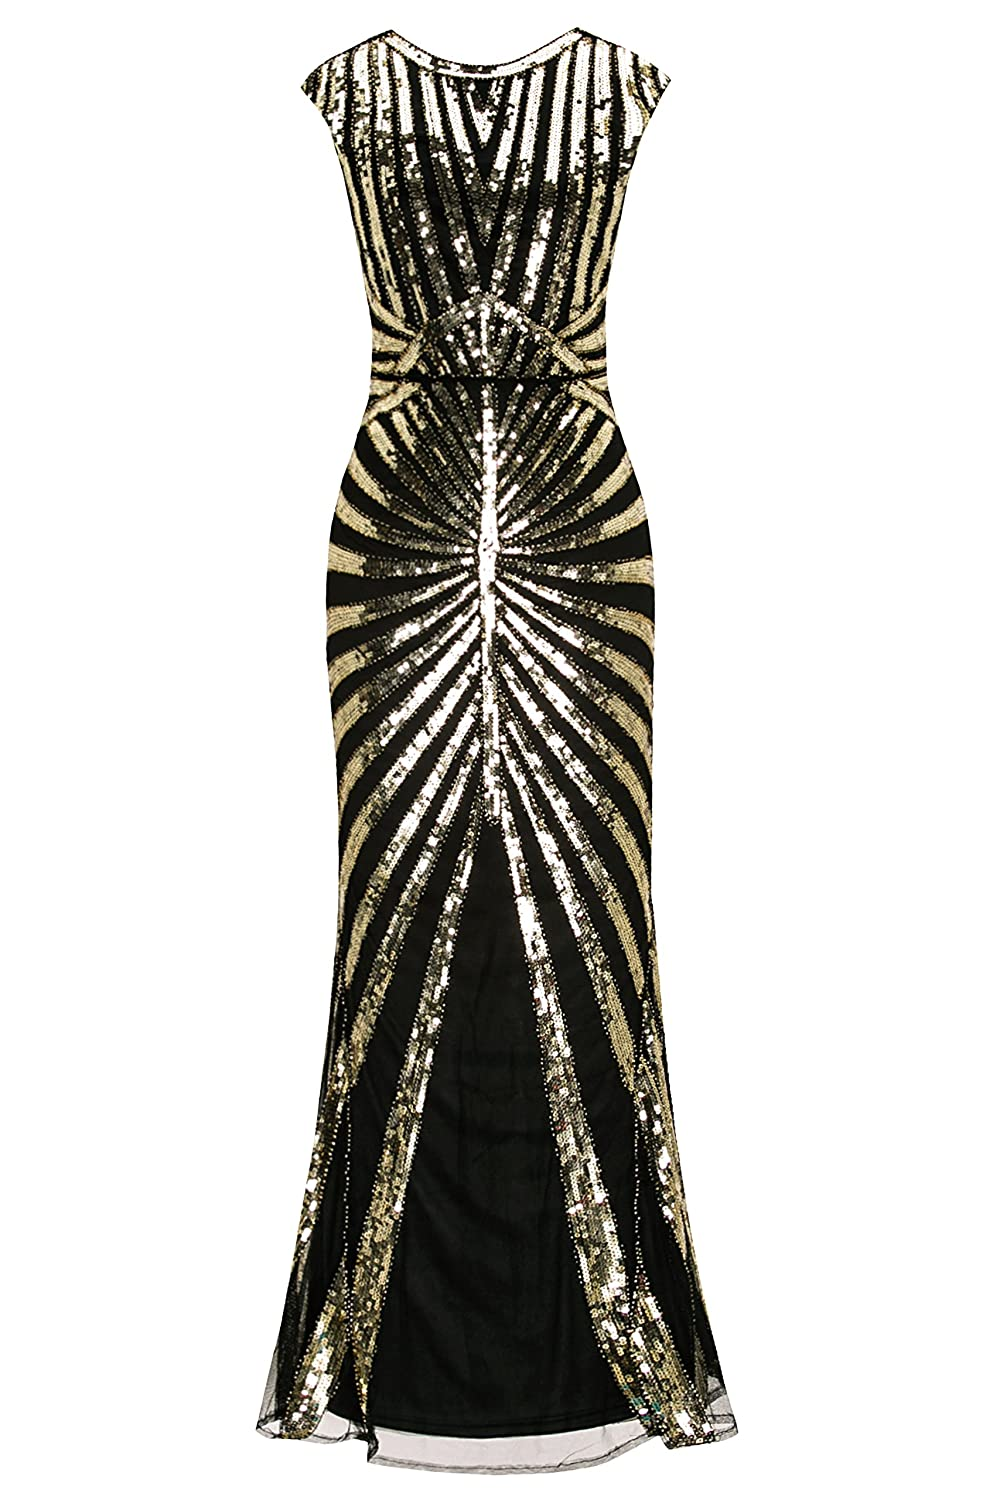 1920s Costumes: Flapper, Great Gatsby, Gangster Girl Metme Womens Evening Dress 1920s Sequin Mermaid Gatsby Formal Long Flapper Gown Party $40.99 AT vintagedancer.com